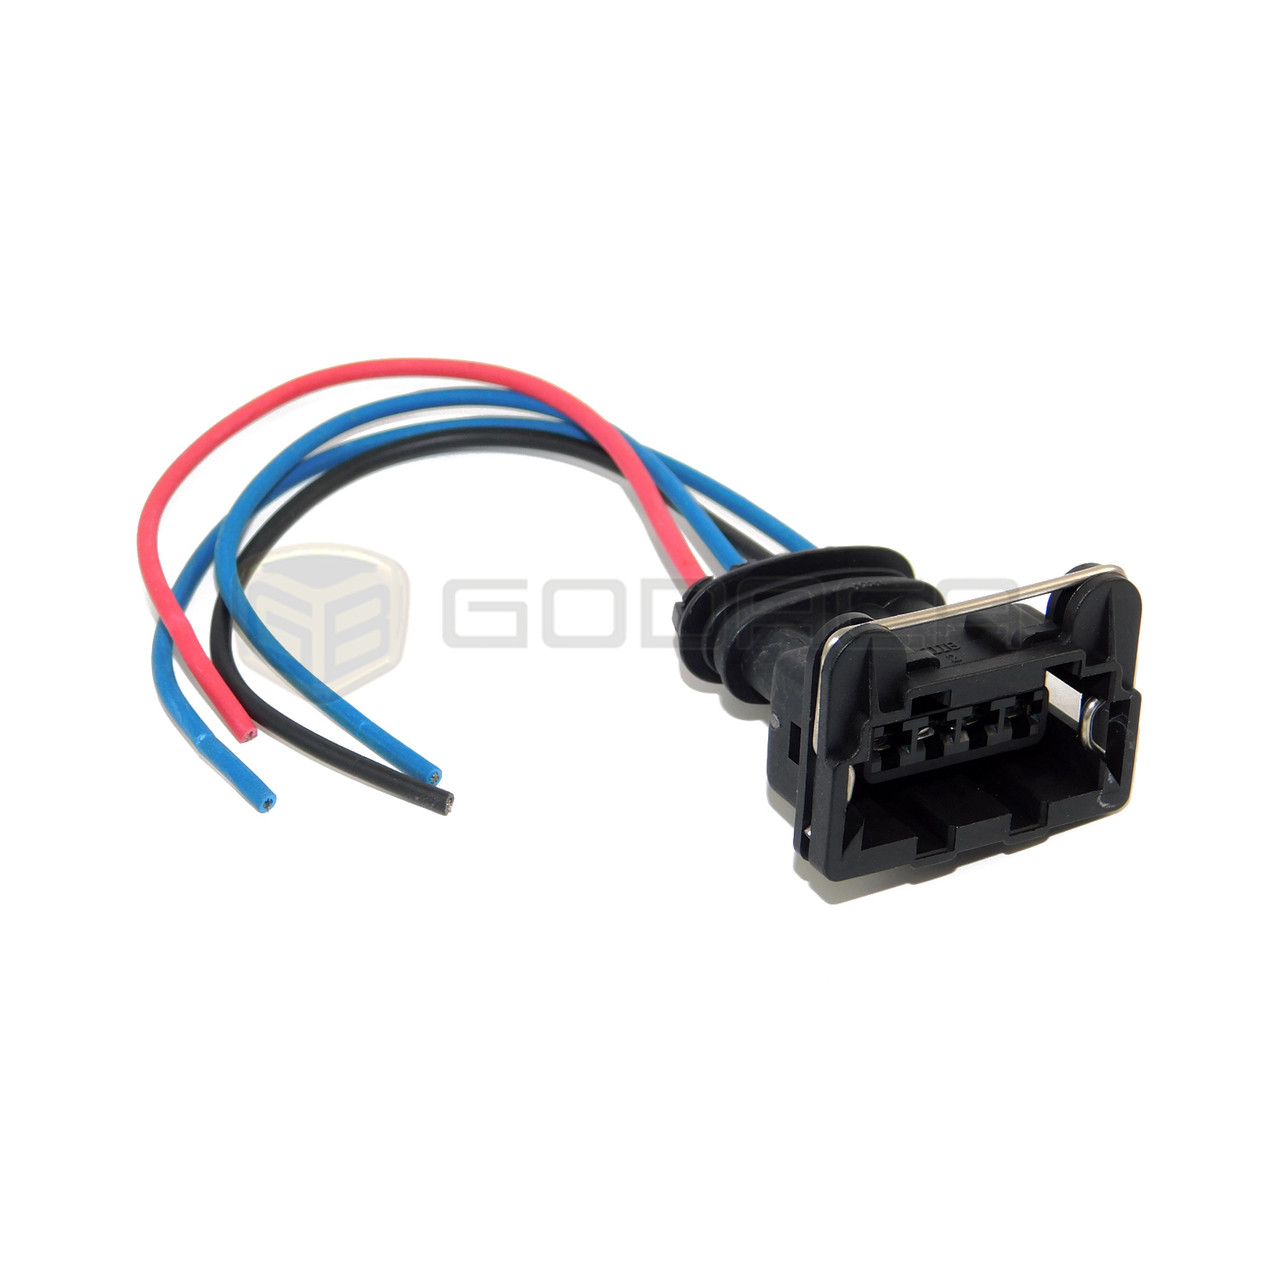 hight resolution of 1 x connector 4 way sensor distributor fuel injector connector harness plug godaca llc